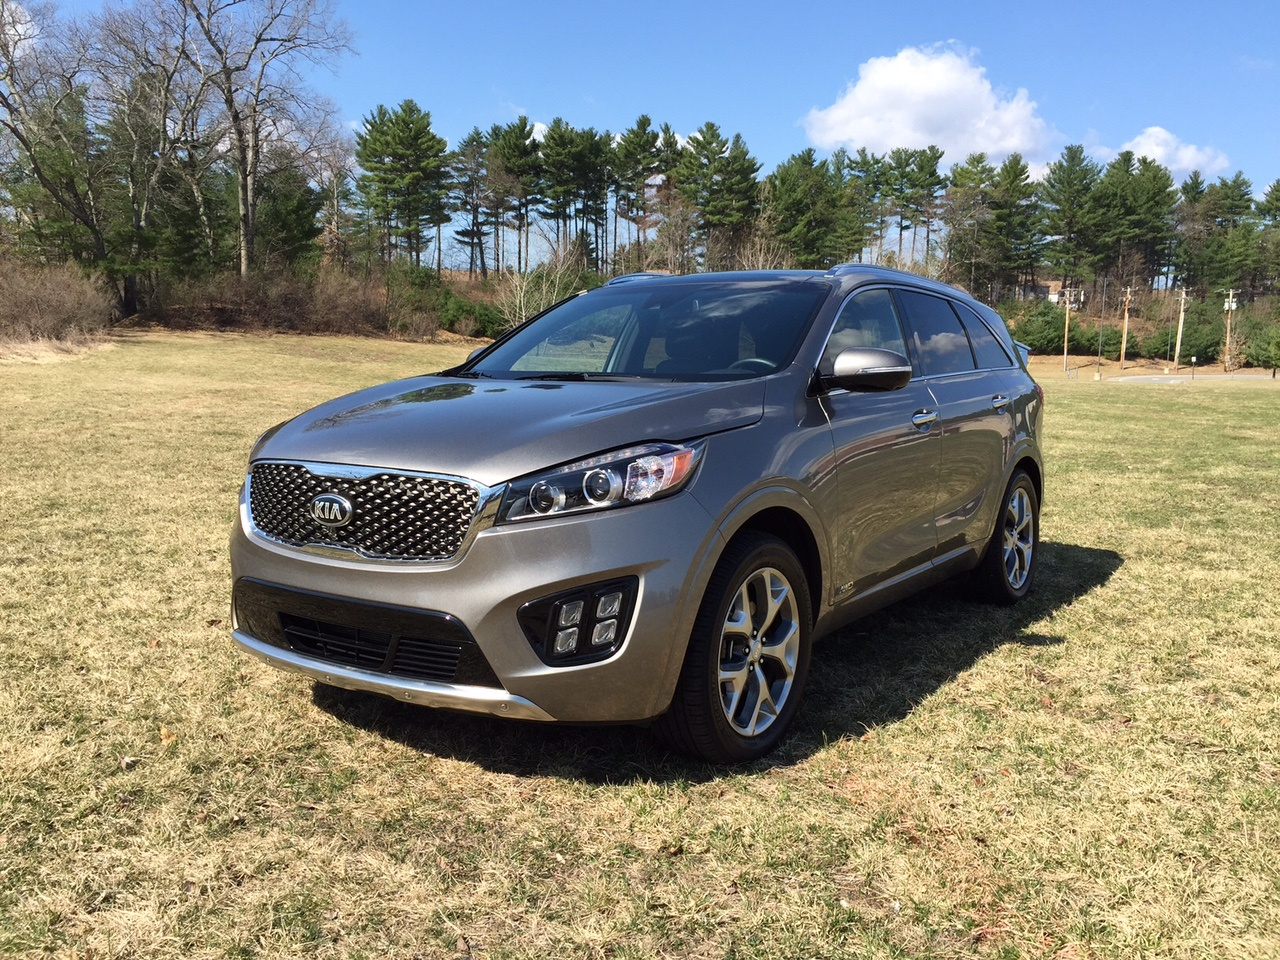 used kia sorento for sale cargurus used cars new cars. Black Bedroom Furniture Sets. Home Design Ideas